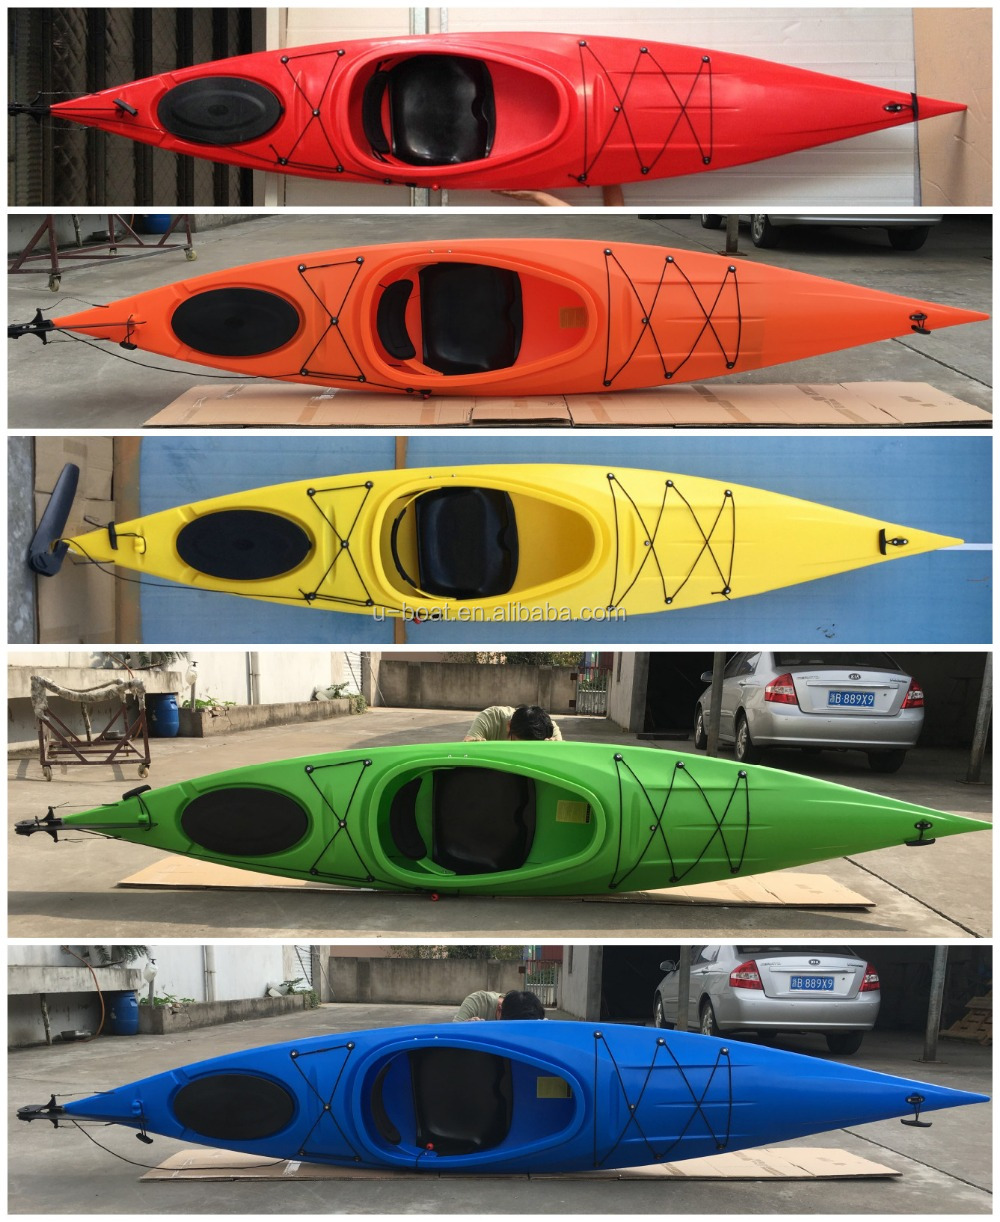 single touring kayak/canoe with pedals